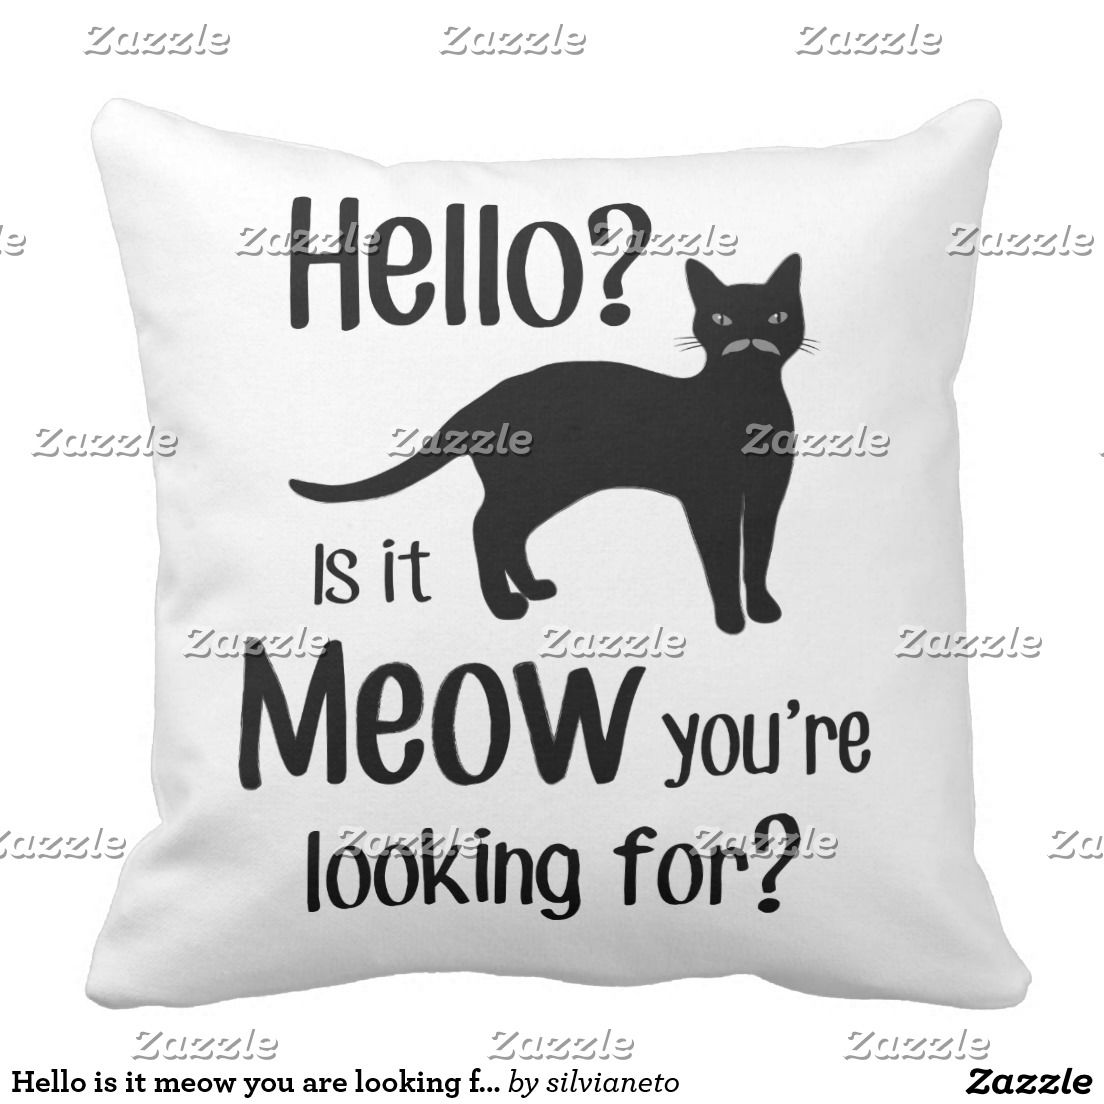 Hello is it meow you are looking for throw pillow Zazzle